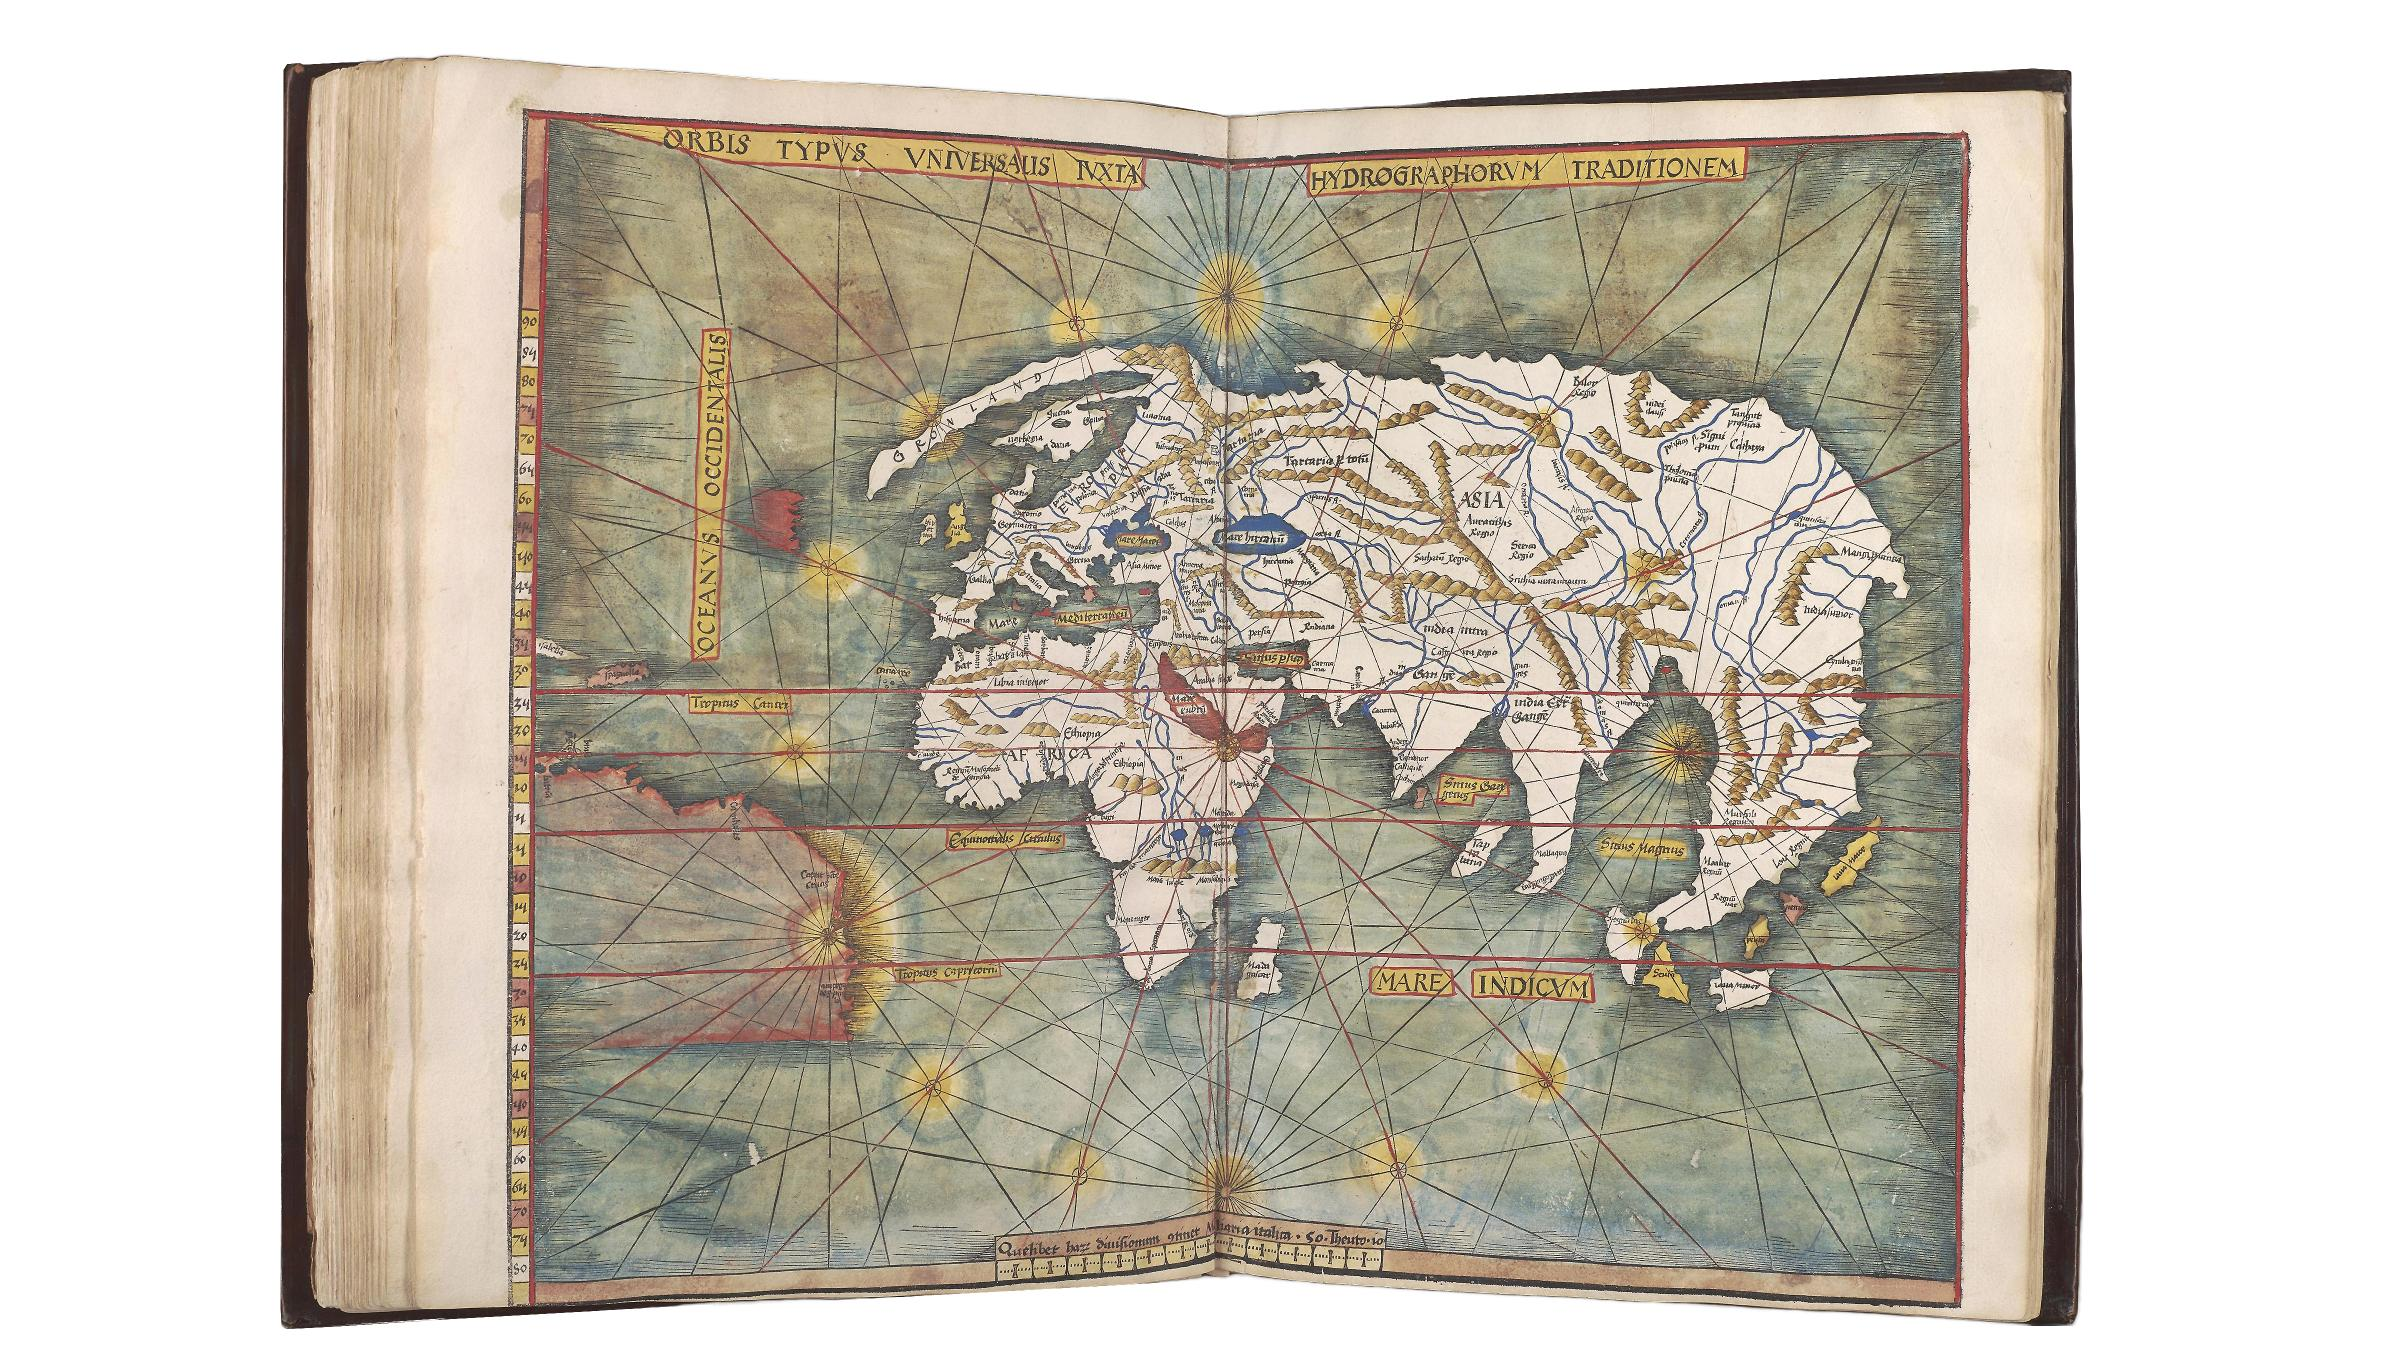 Mcgregor library offers rare digital history of the americas uva today news of exploration was pouring in so quickly that at the time of publication scotts world map was already outdated still the books exquisite gumiabroncs Images